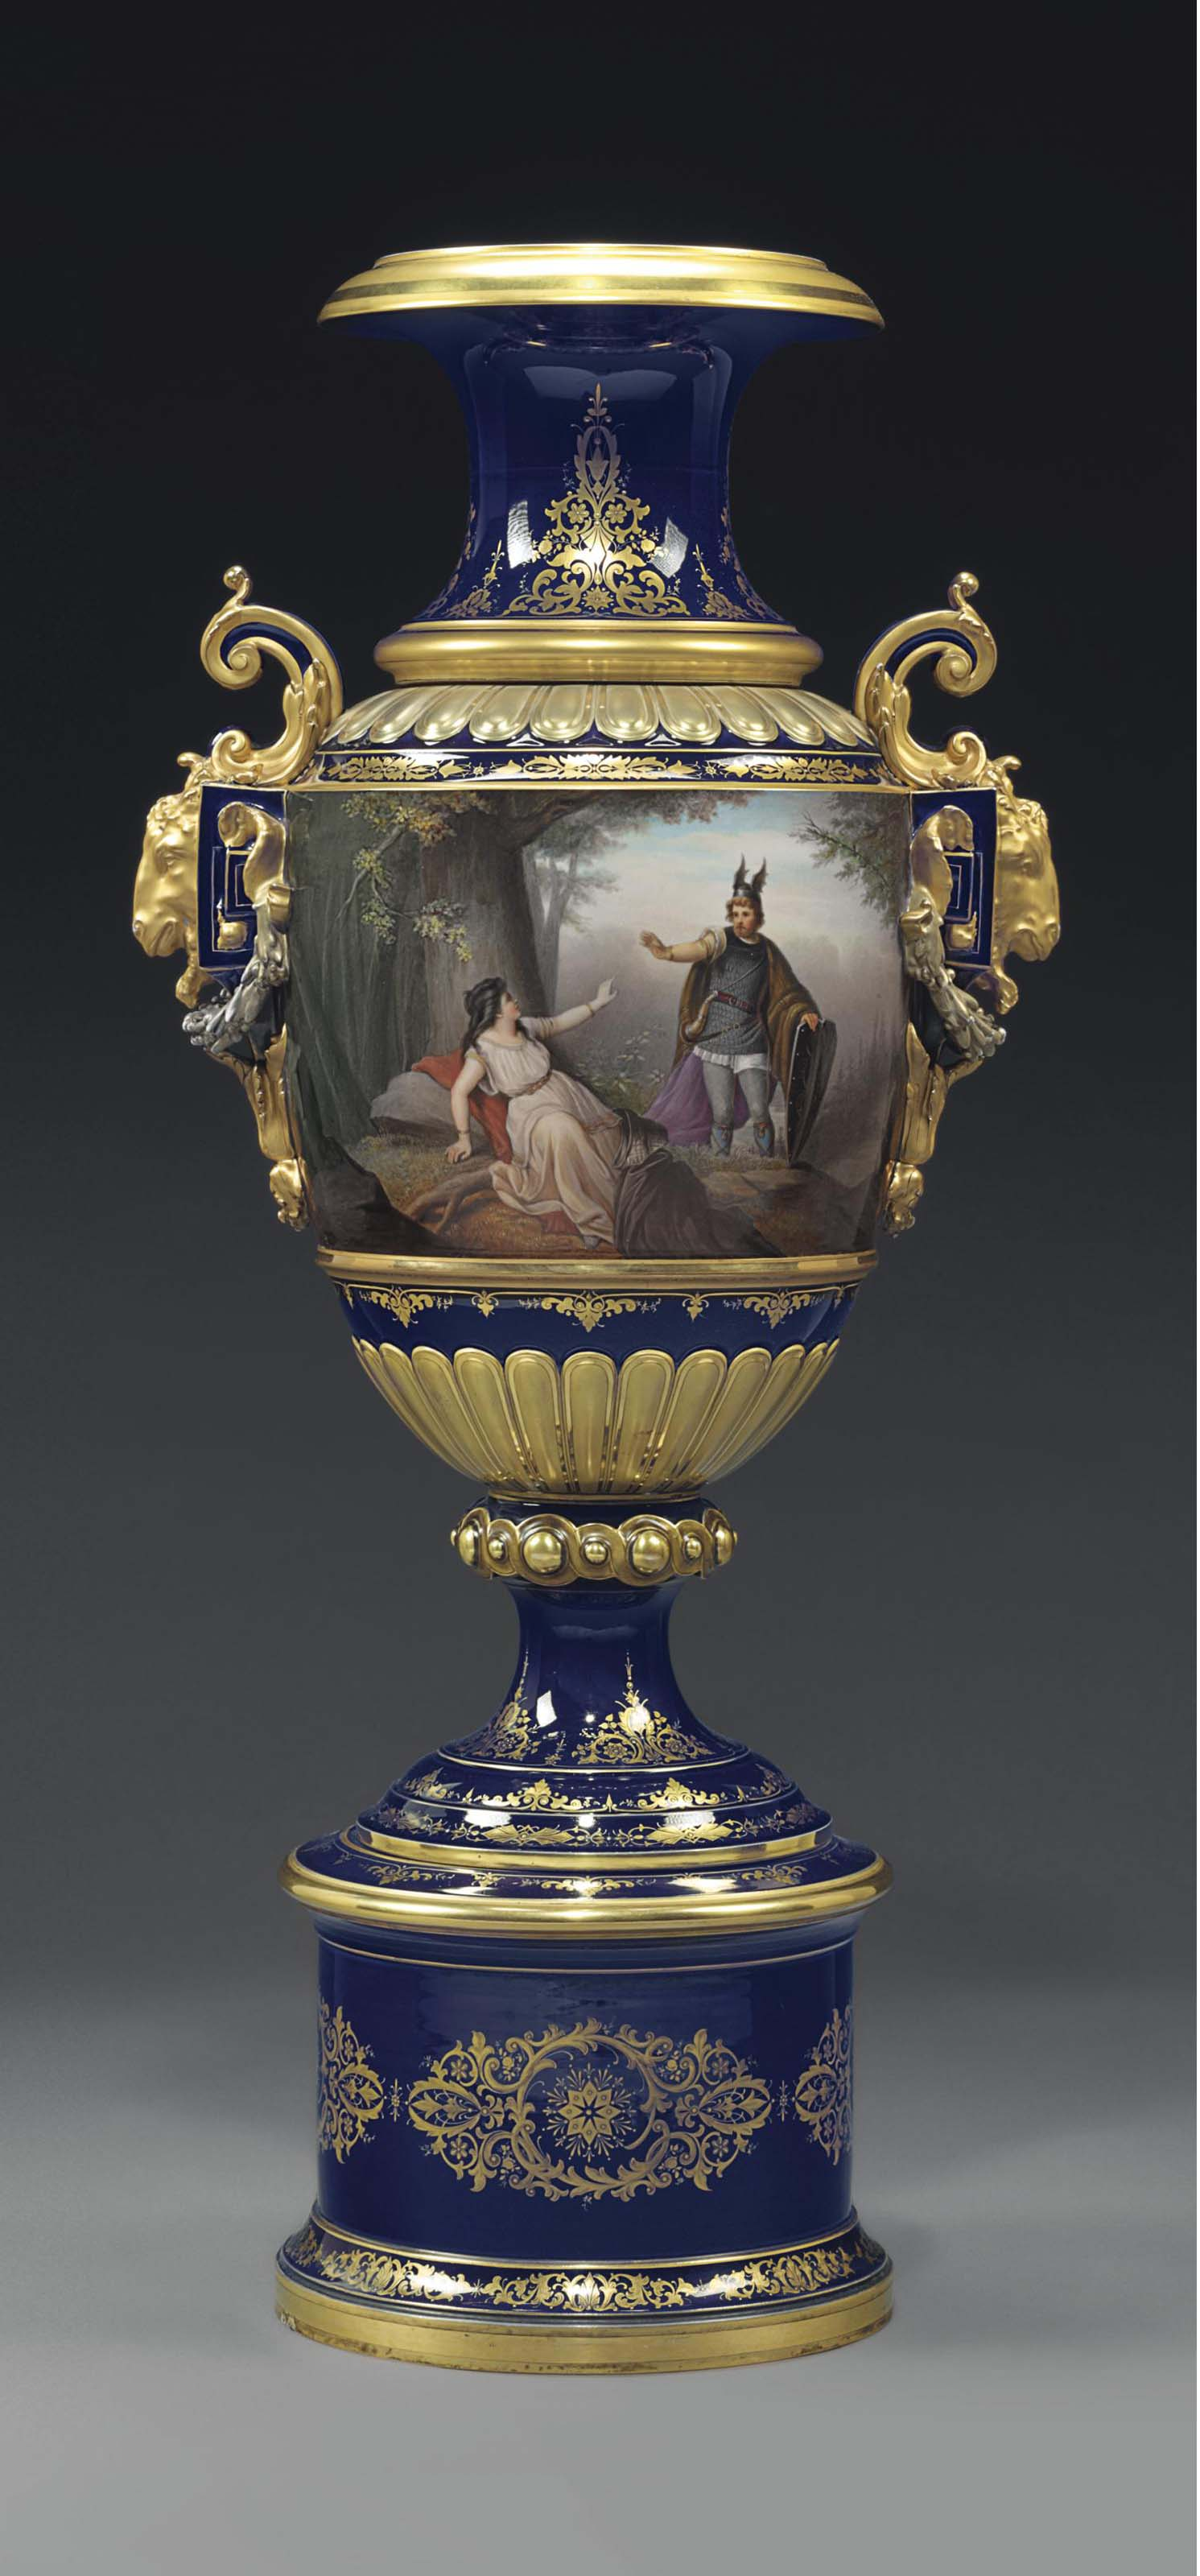 A MONUMENTAL VIENNA STYLE PORCELAIN COBALT-BLUE GROUND VASE AND STAND